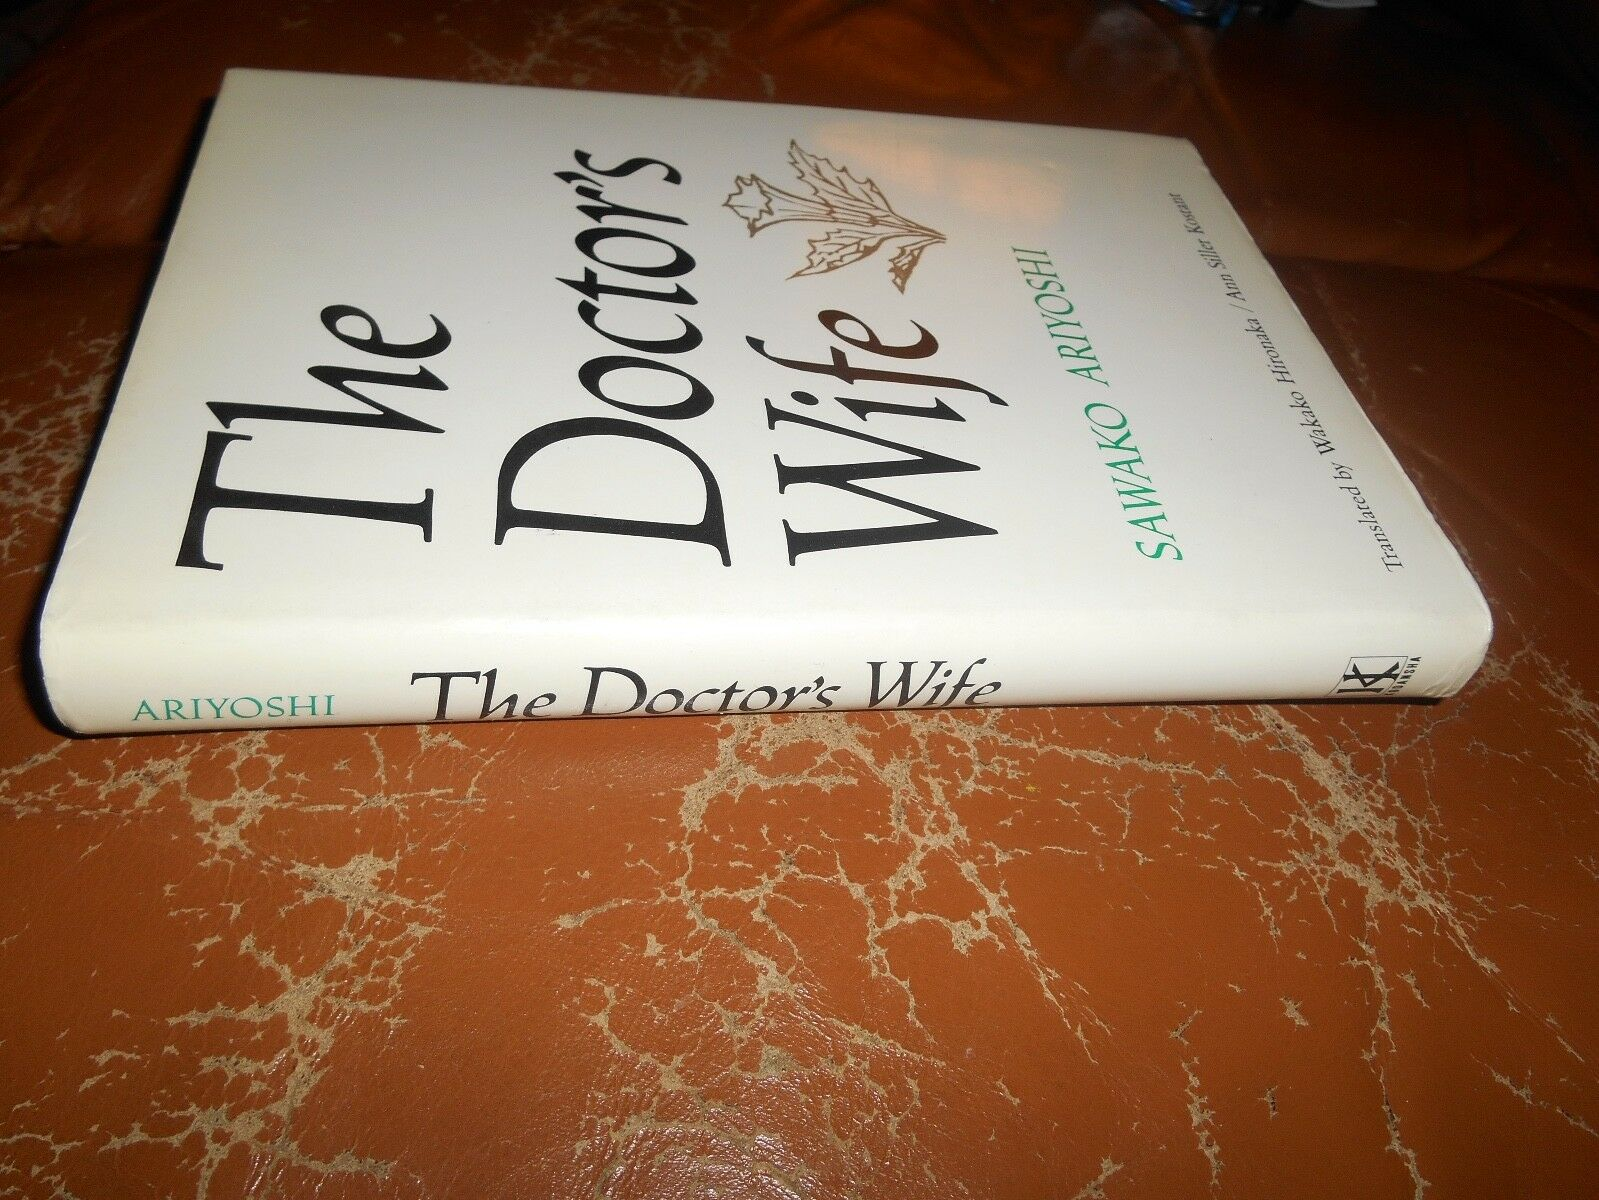 the doctors wife by sawako ariyoshi